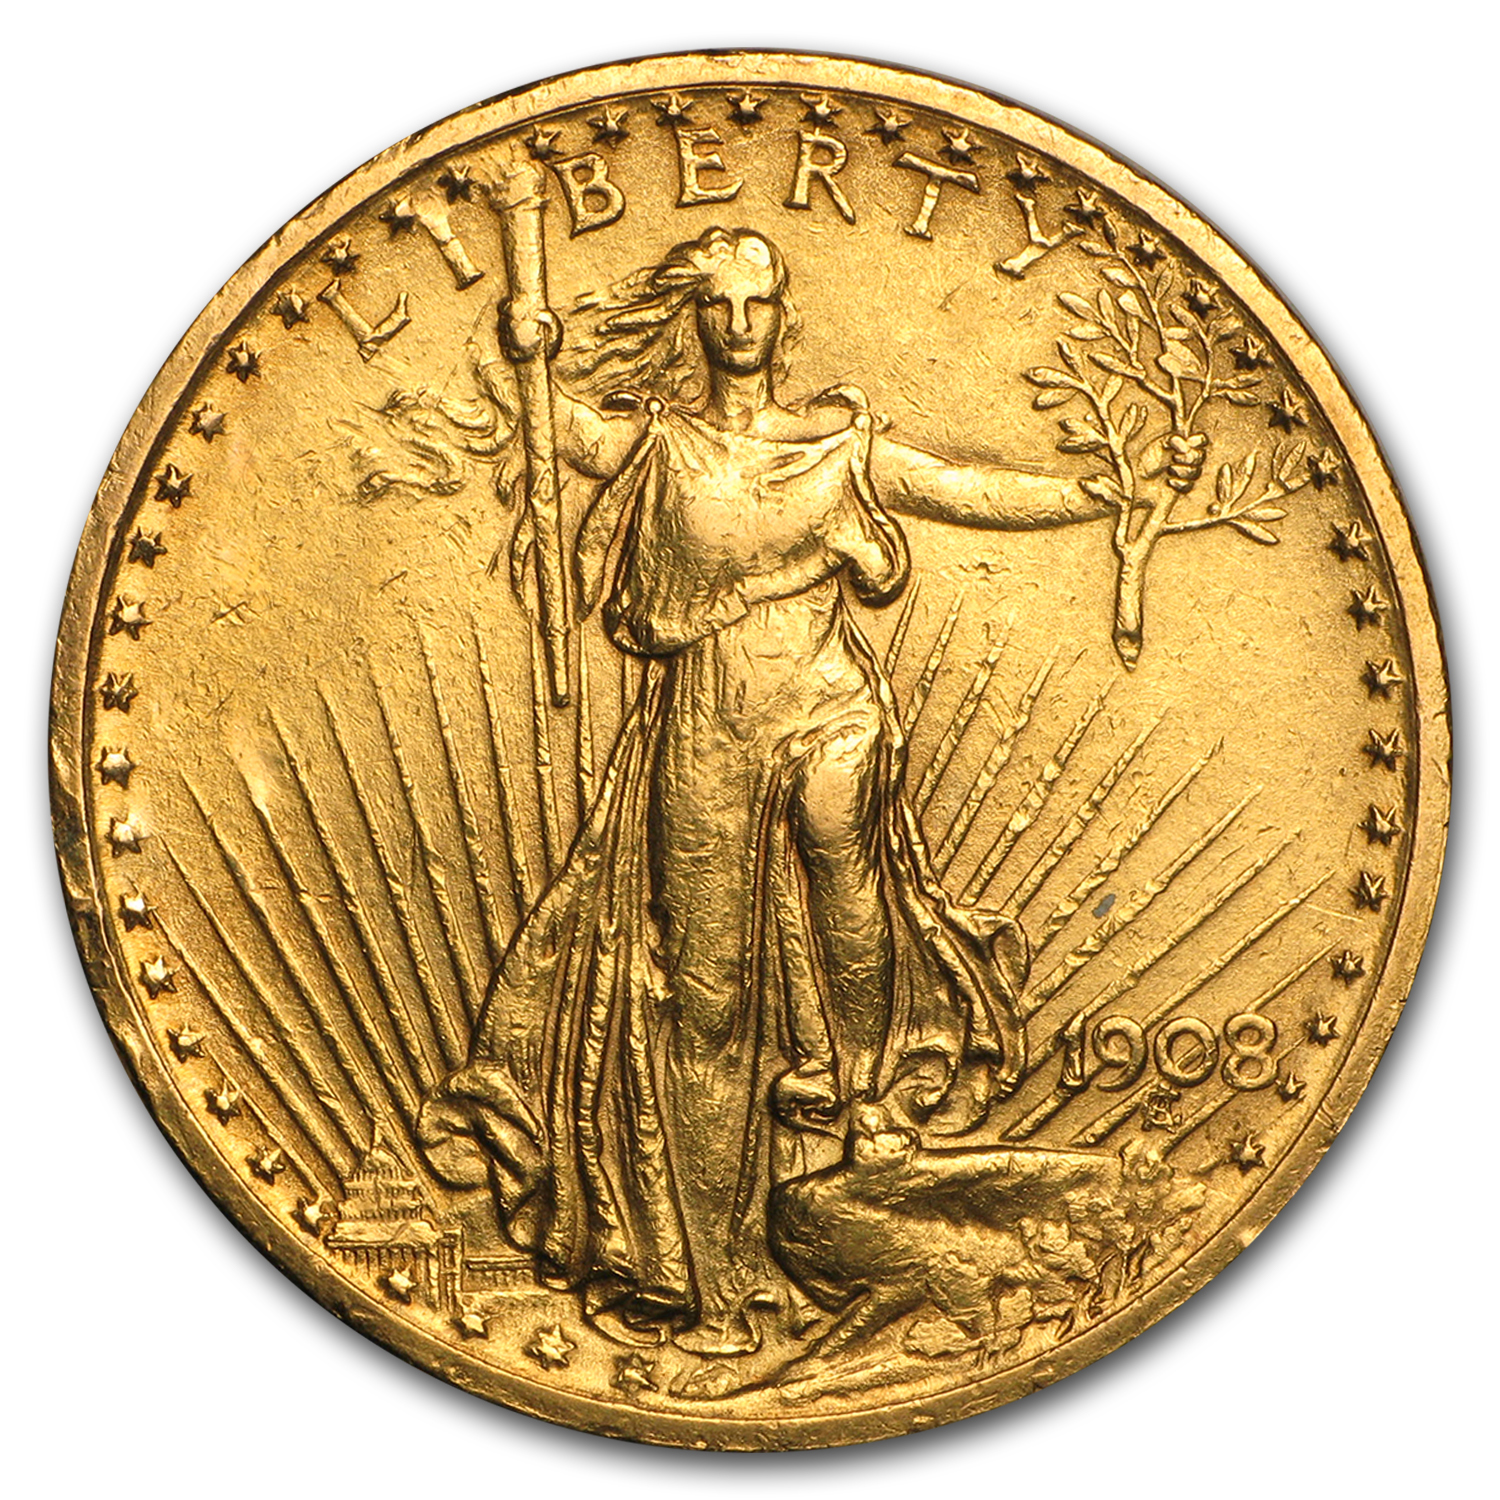 1908 $20 St. Gaudens Gold Double Eagle w/Motto (Cleaned)